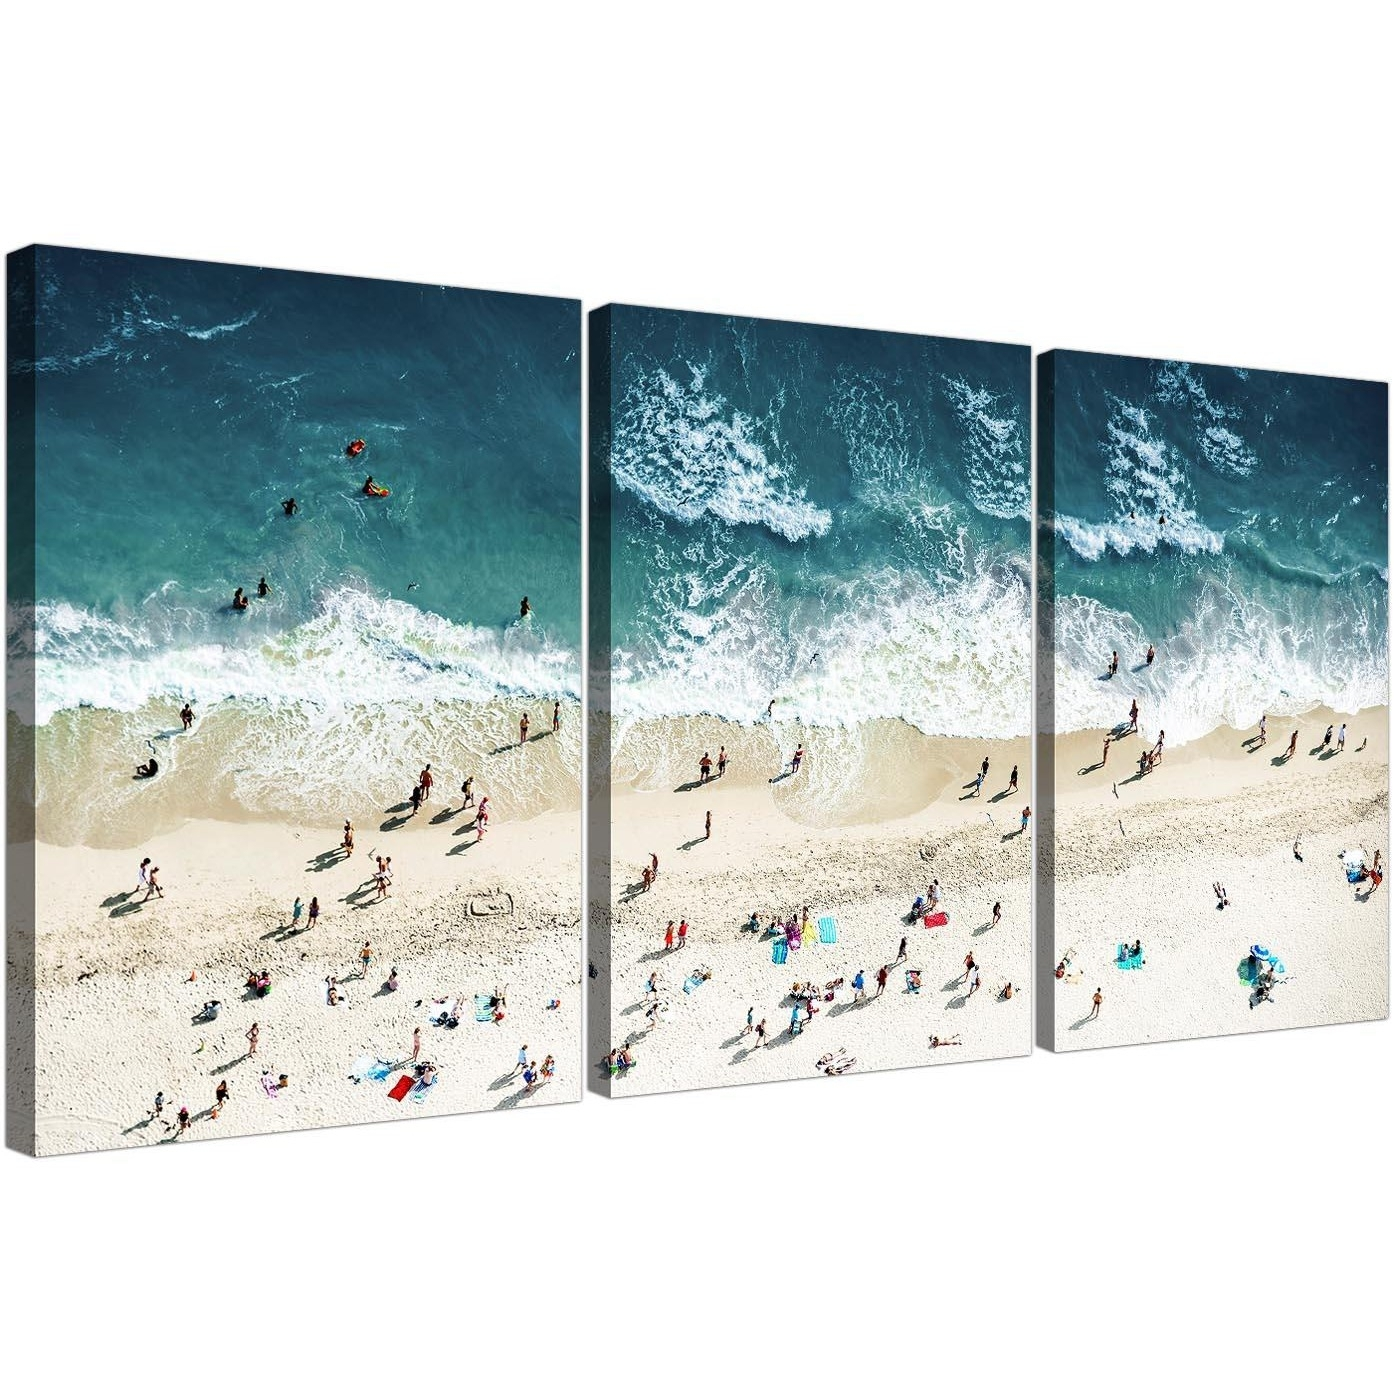 Panoramic Blue Beach – Landscape Canvas Multi 3 Panel – 125Cm Wide In Most Current Gold Coast Canvas Wall Art (View 10 of 15)